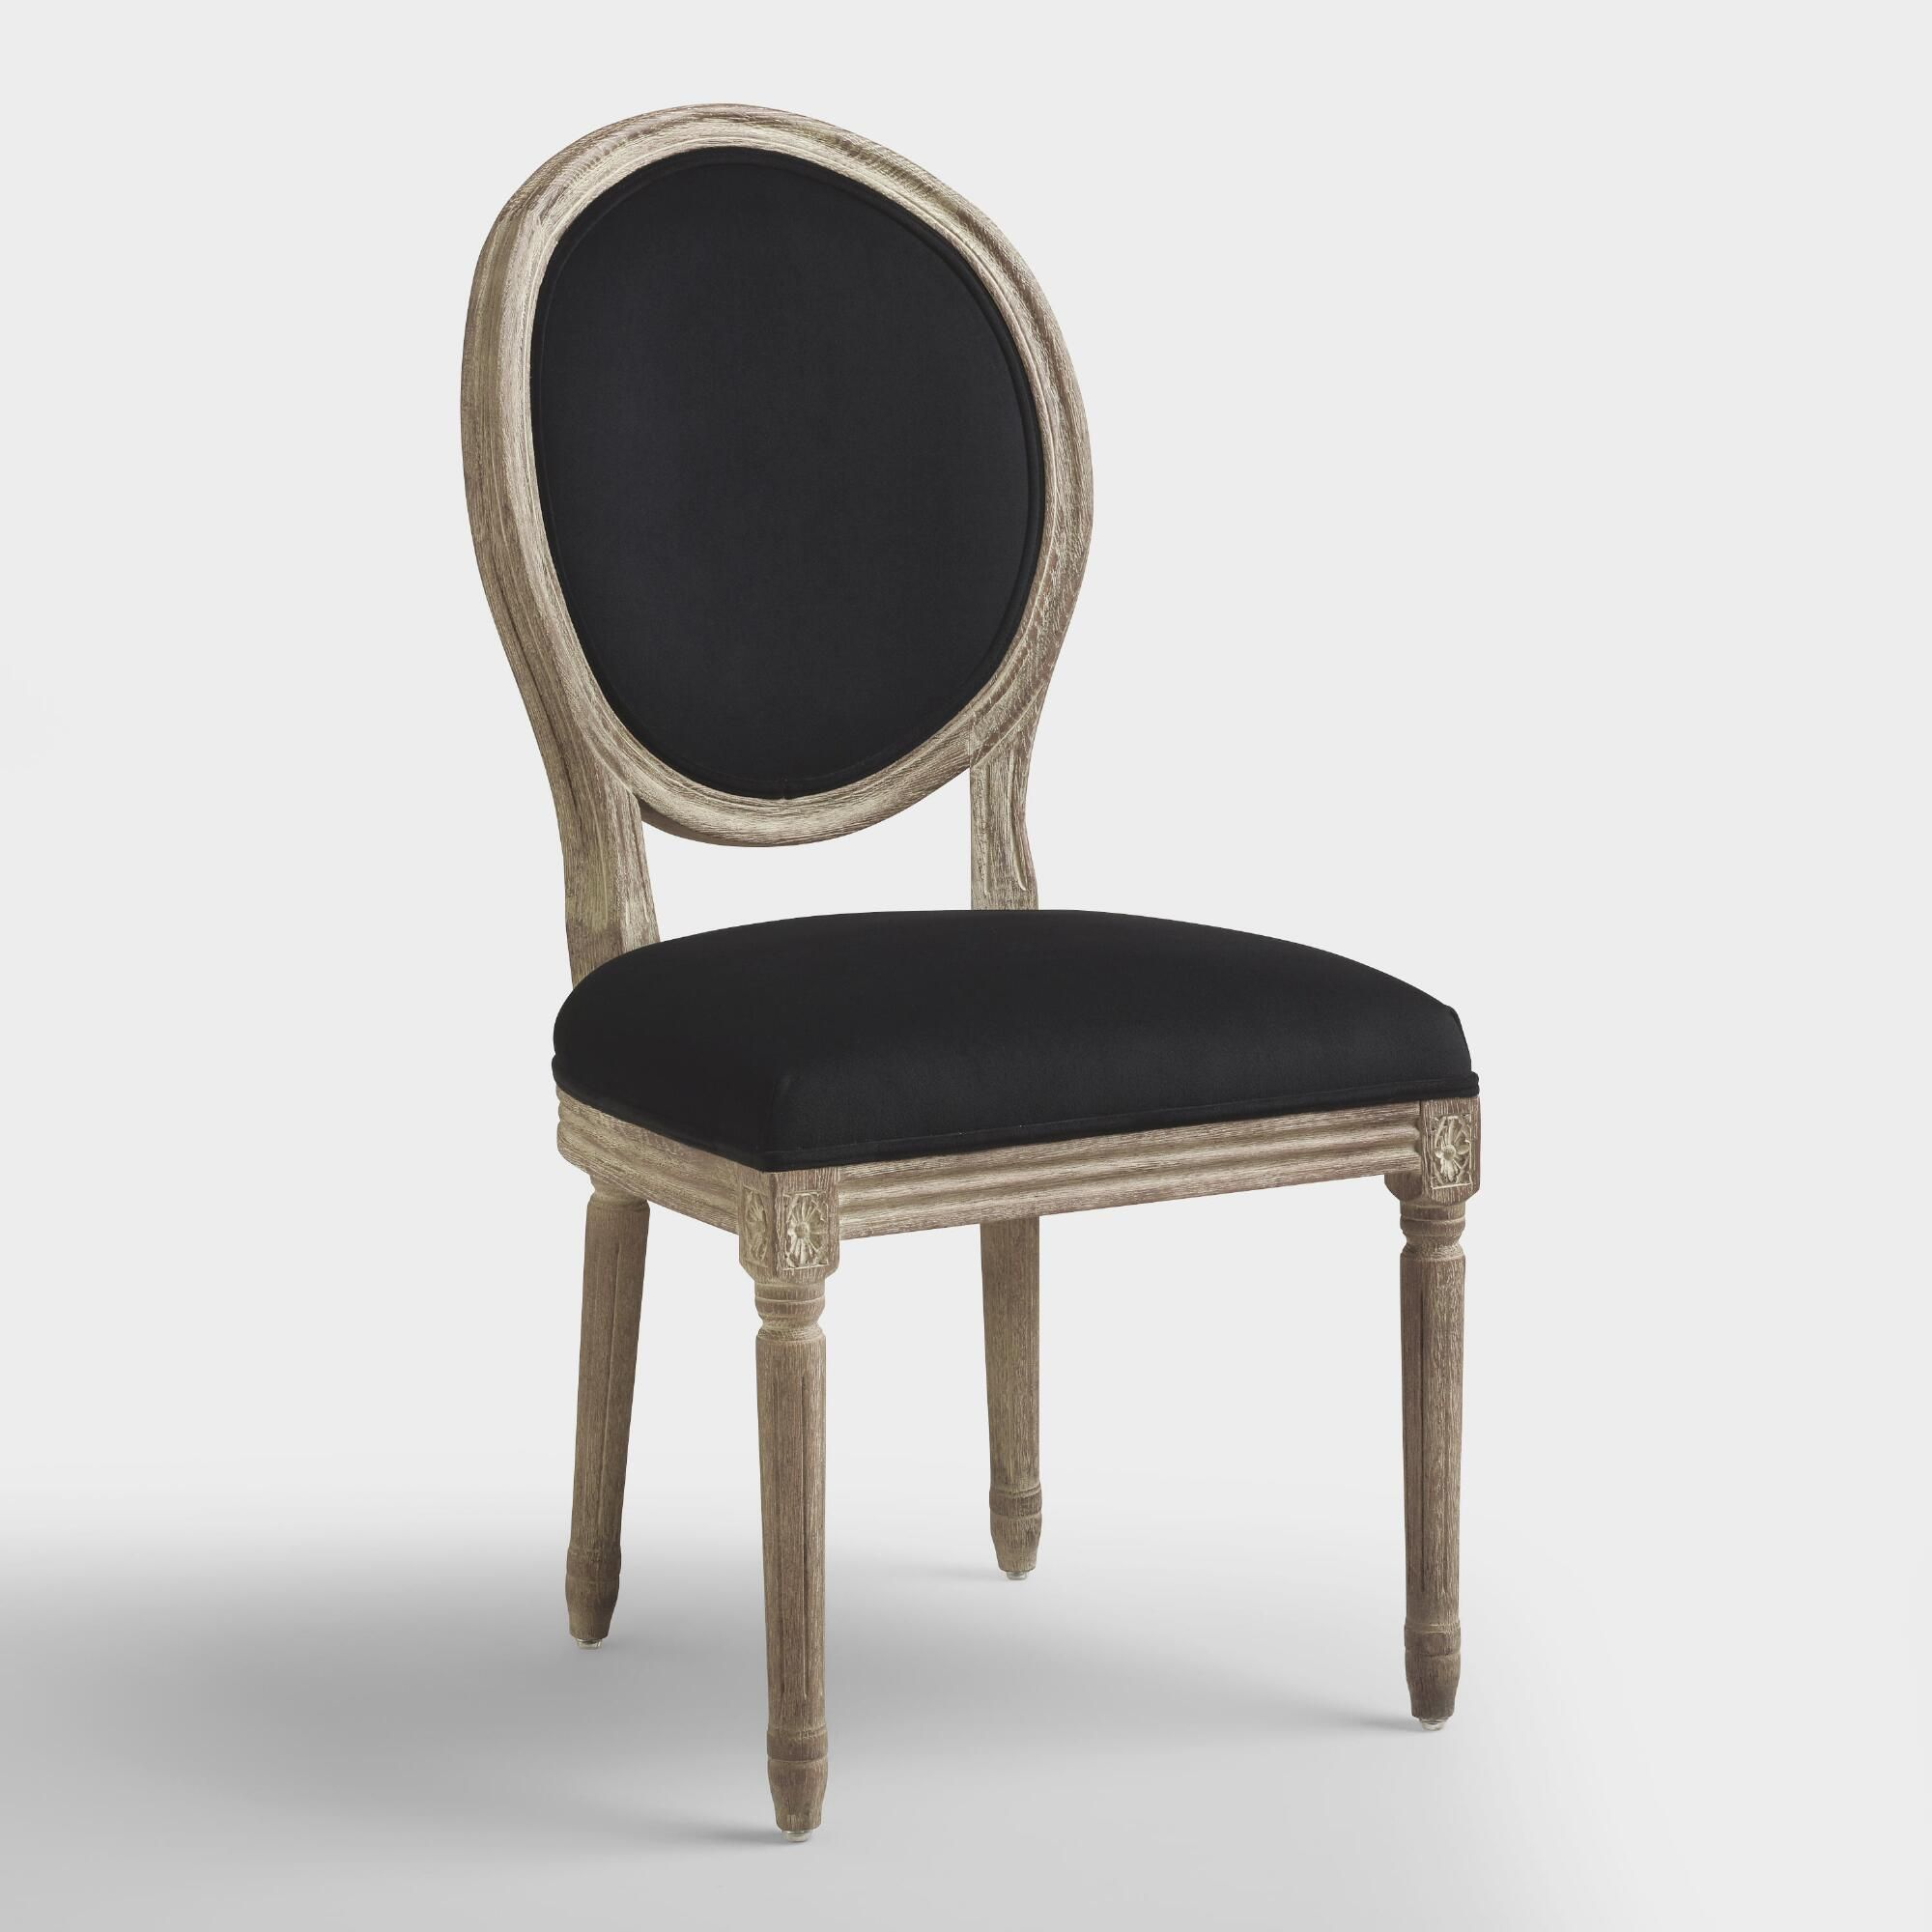 Curved Back Dining Room Chairs Gorgeous Boasting A Curved Shapely Silhouette Our Black Paige Round Back Inspiration